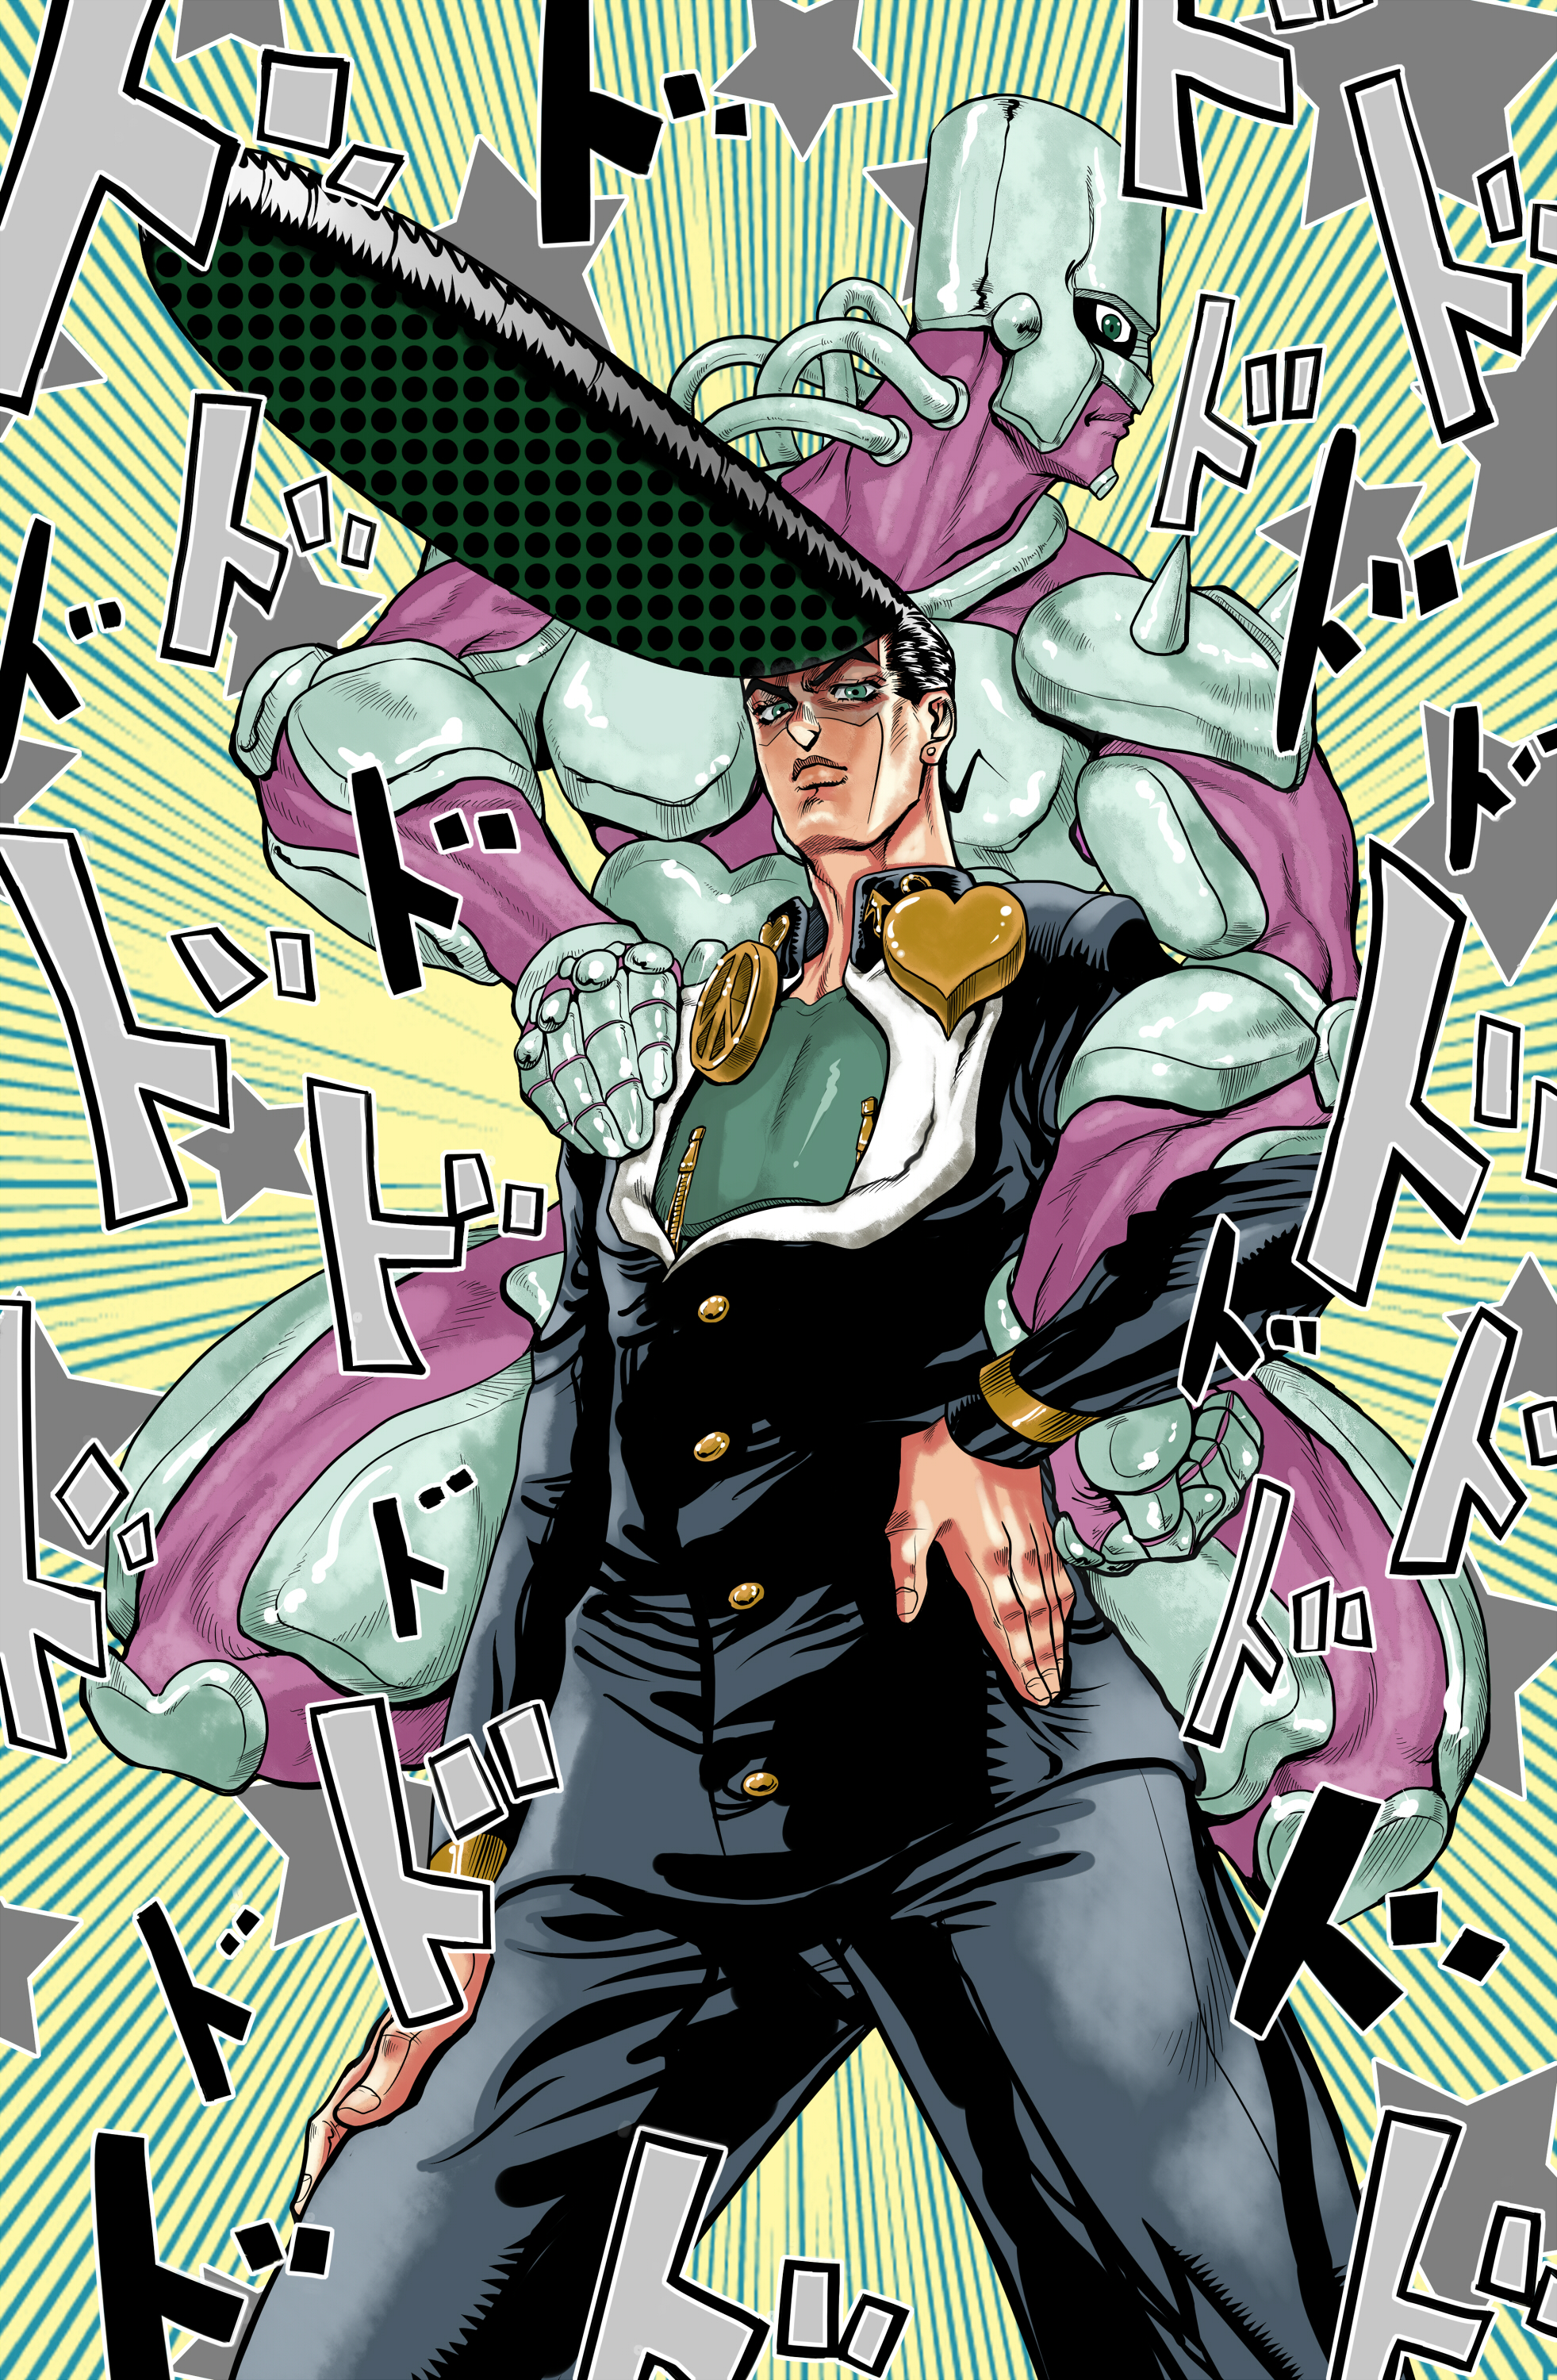 Crazy Diamond Diamond Is Unbreakable Zerochan Anime Image Board All star battle art gallery. zerochan anime image board